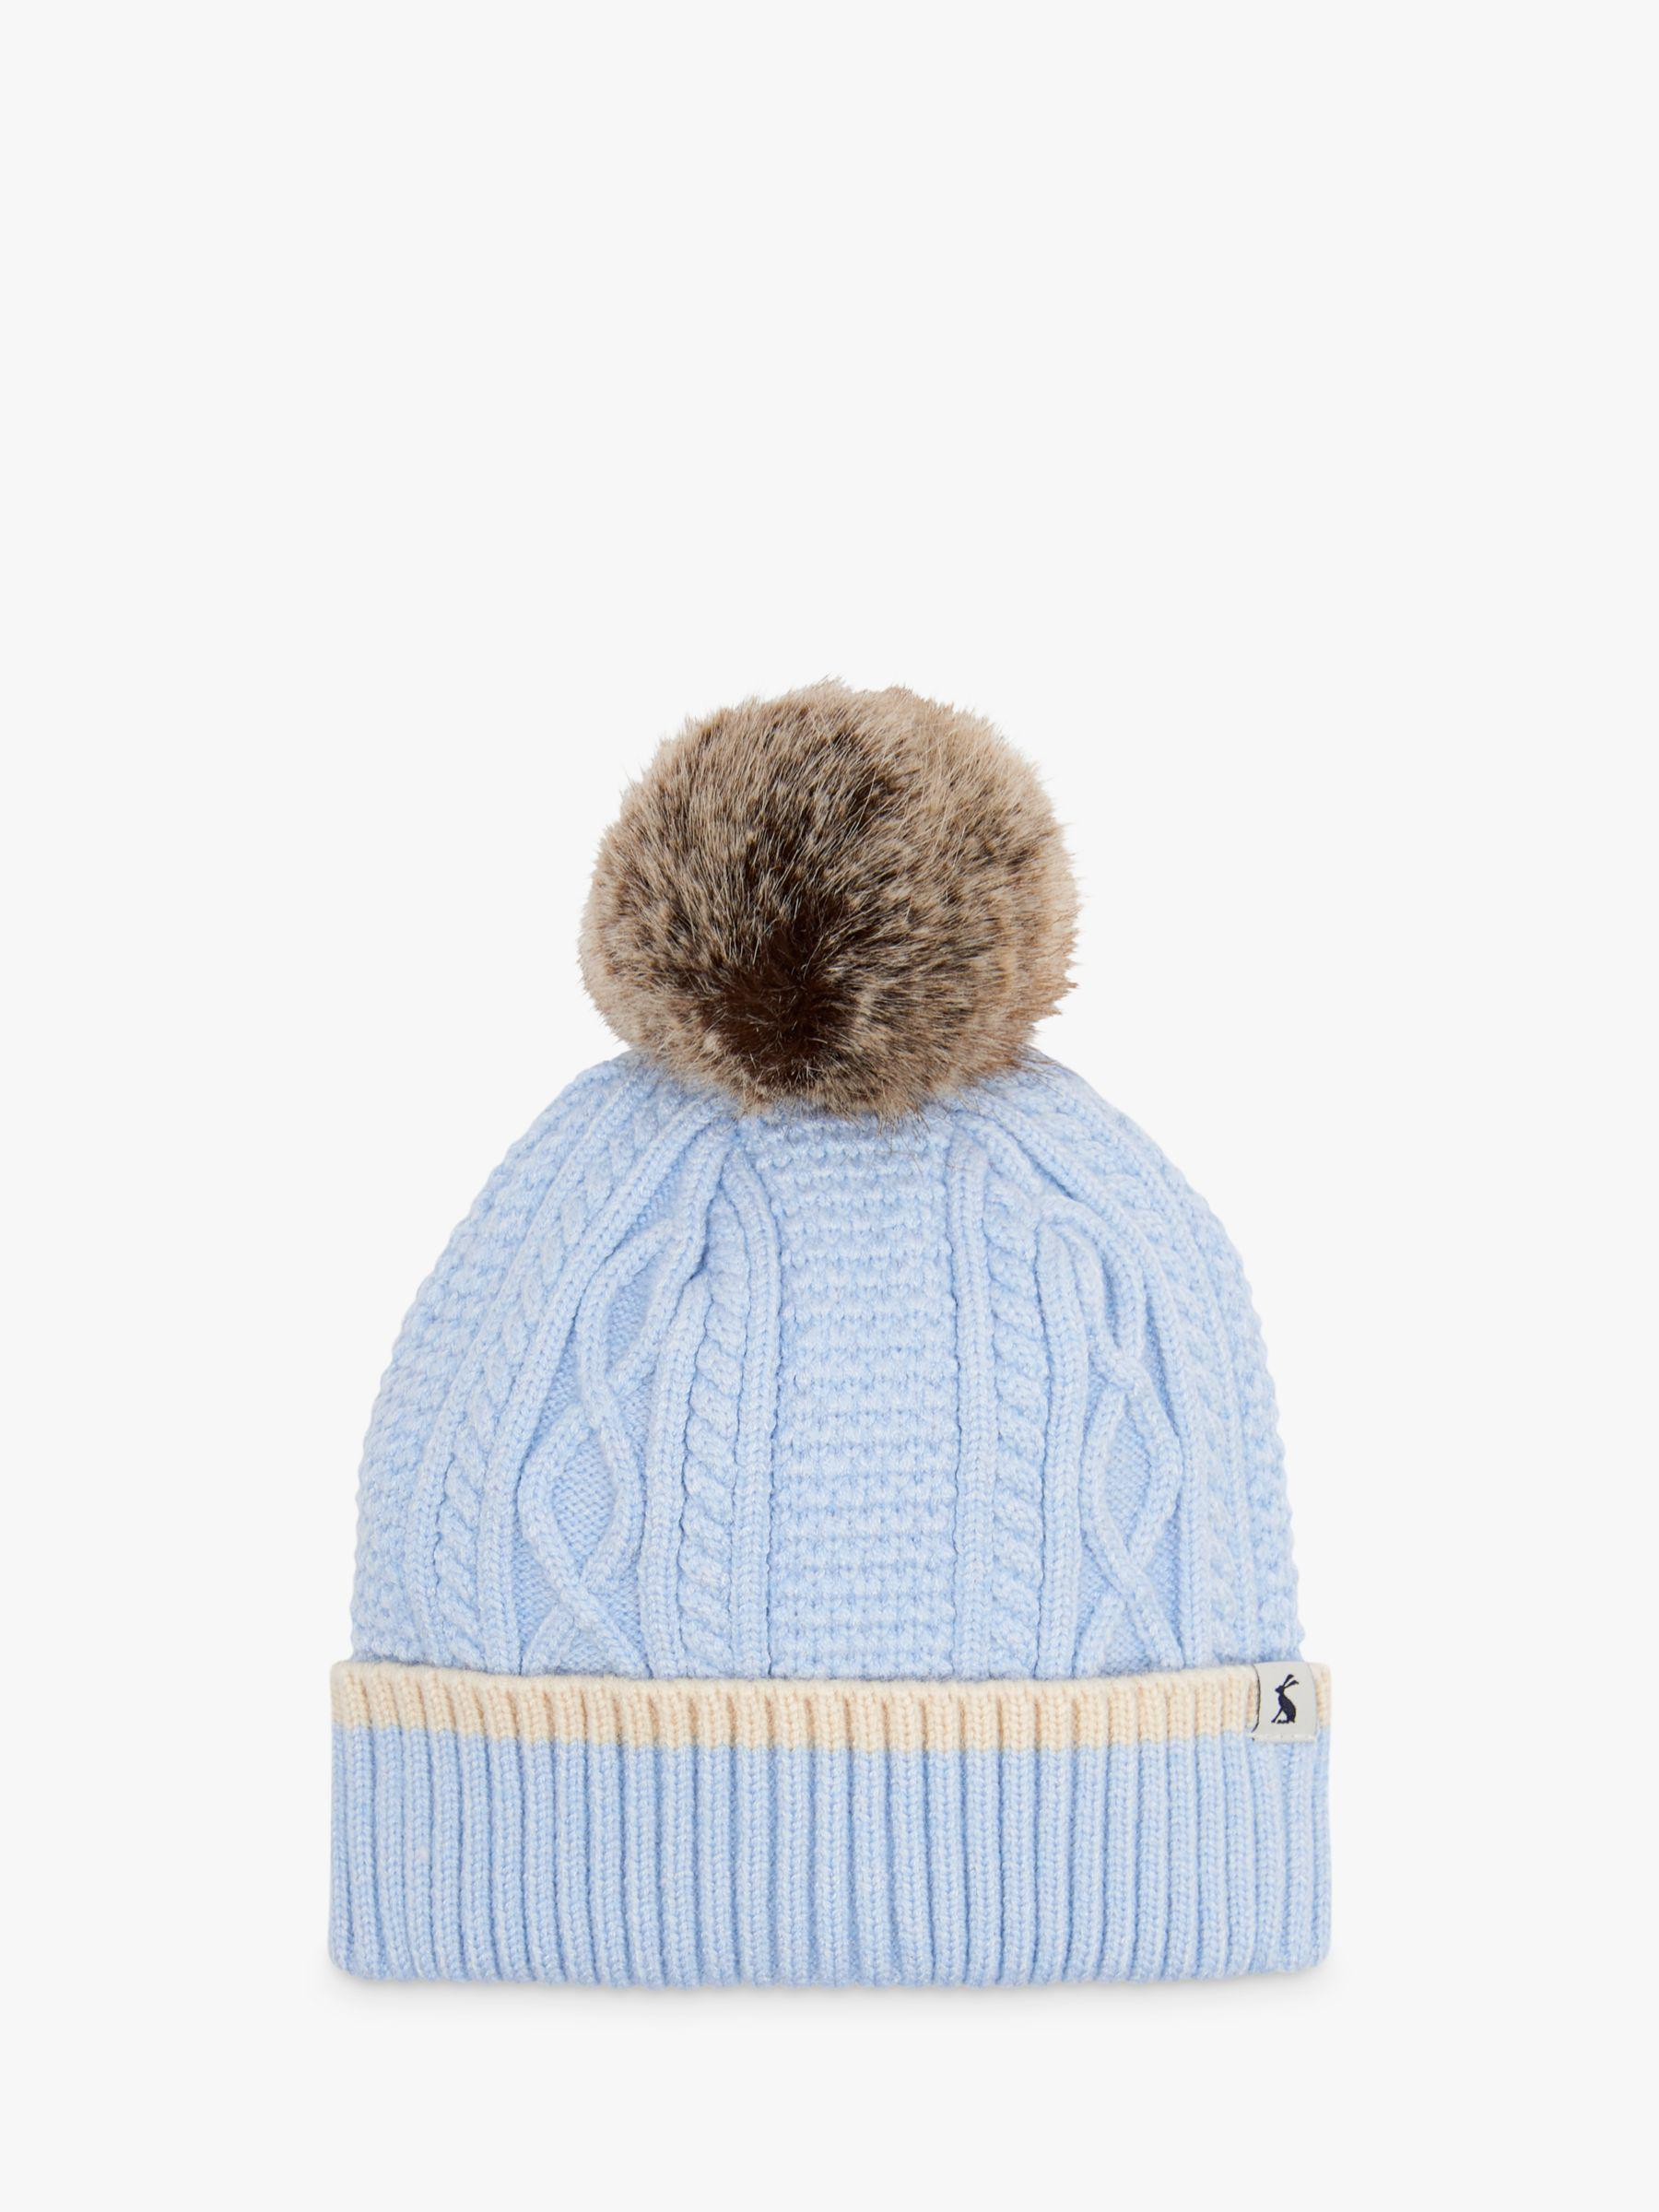 e593688fe6023 Joules Anya Bobble Cable Knit Hat in Blue - Lyst